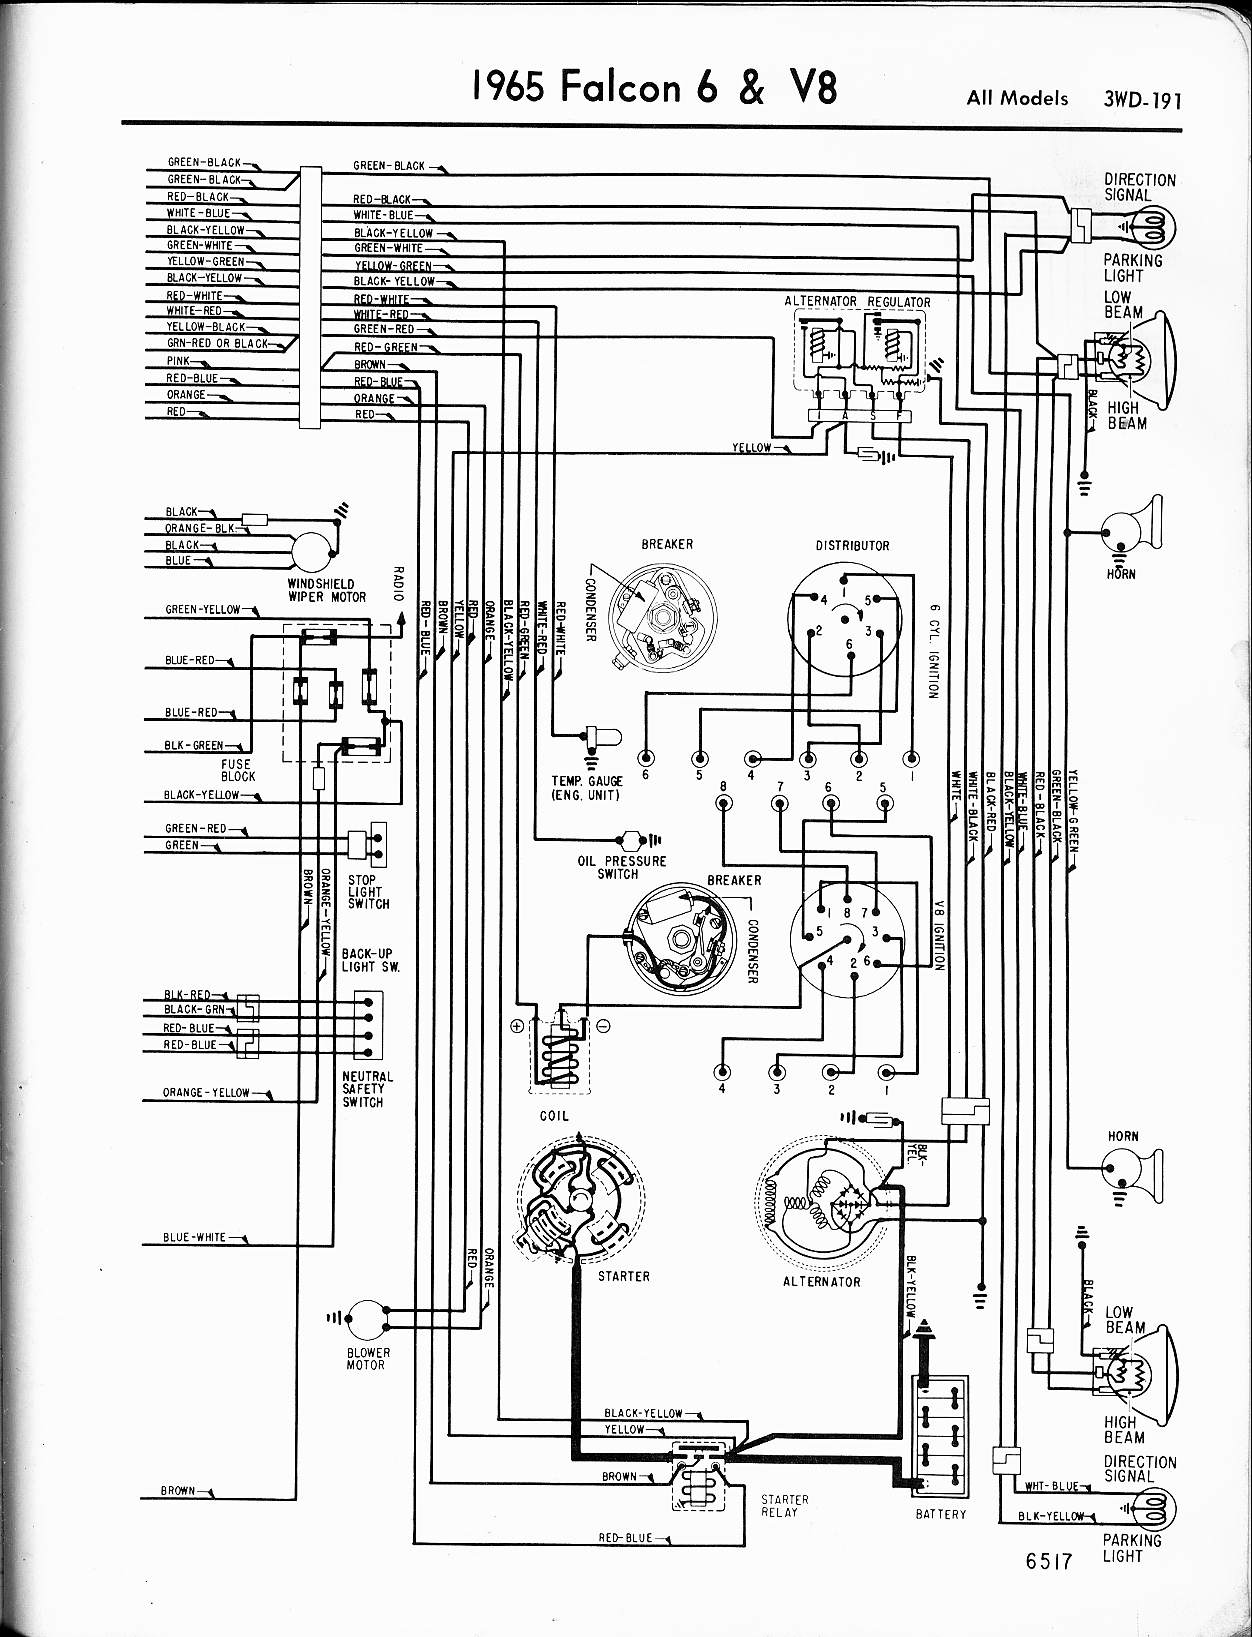 MWire5765 191 engine wire diagram for 65 falcon 65 falcon hot rod \u2022 wiring Square D Pumptrol Wiring at cos-gaming.co